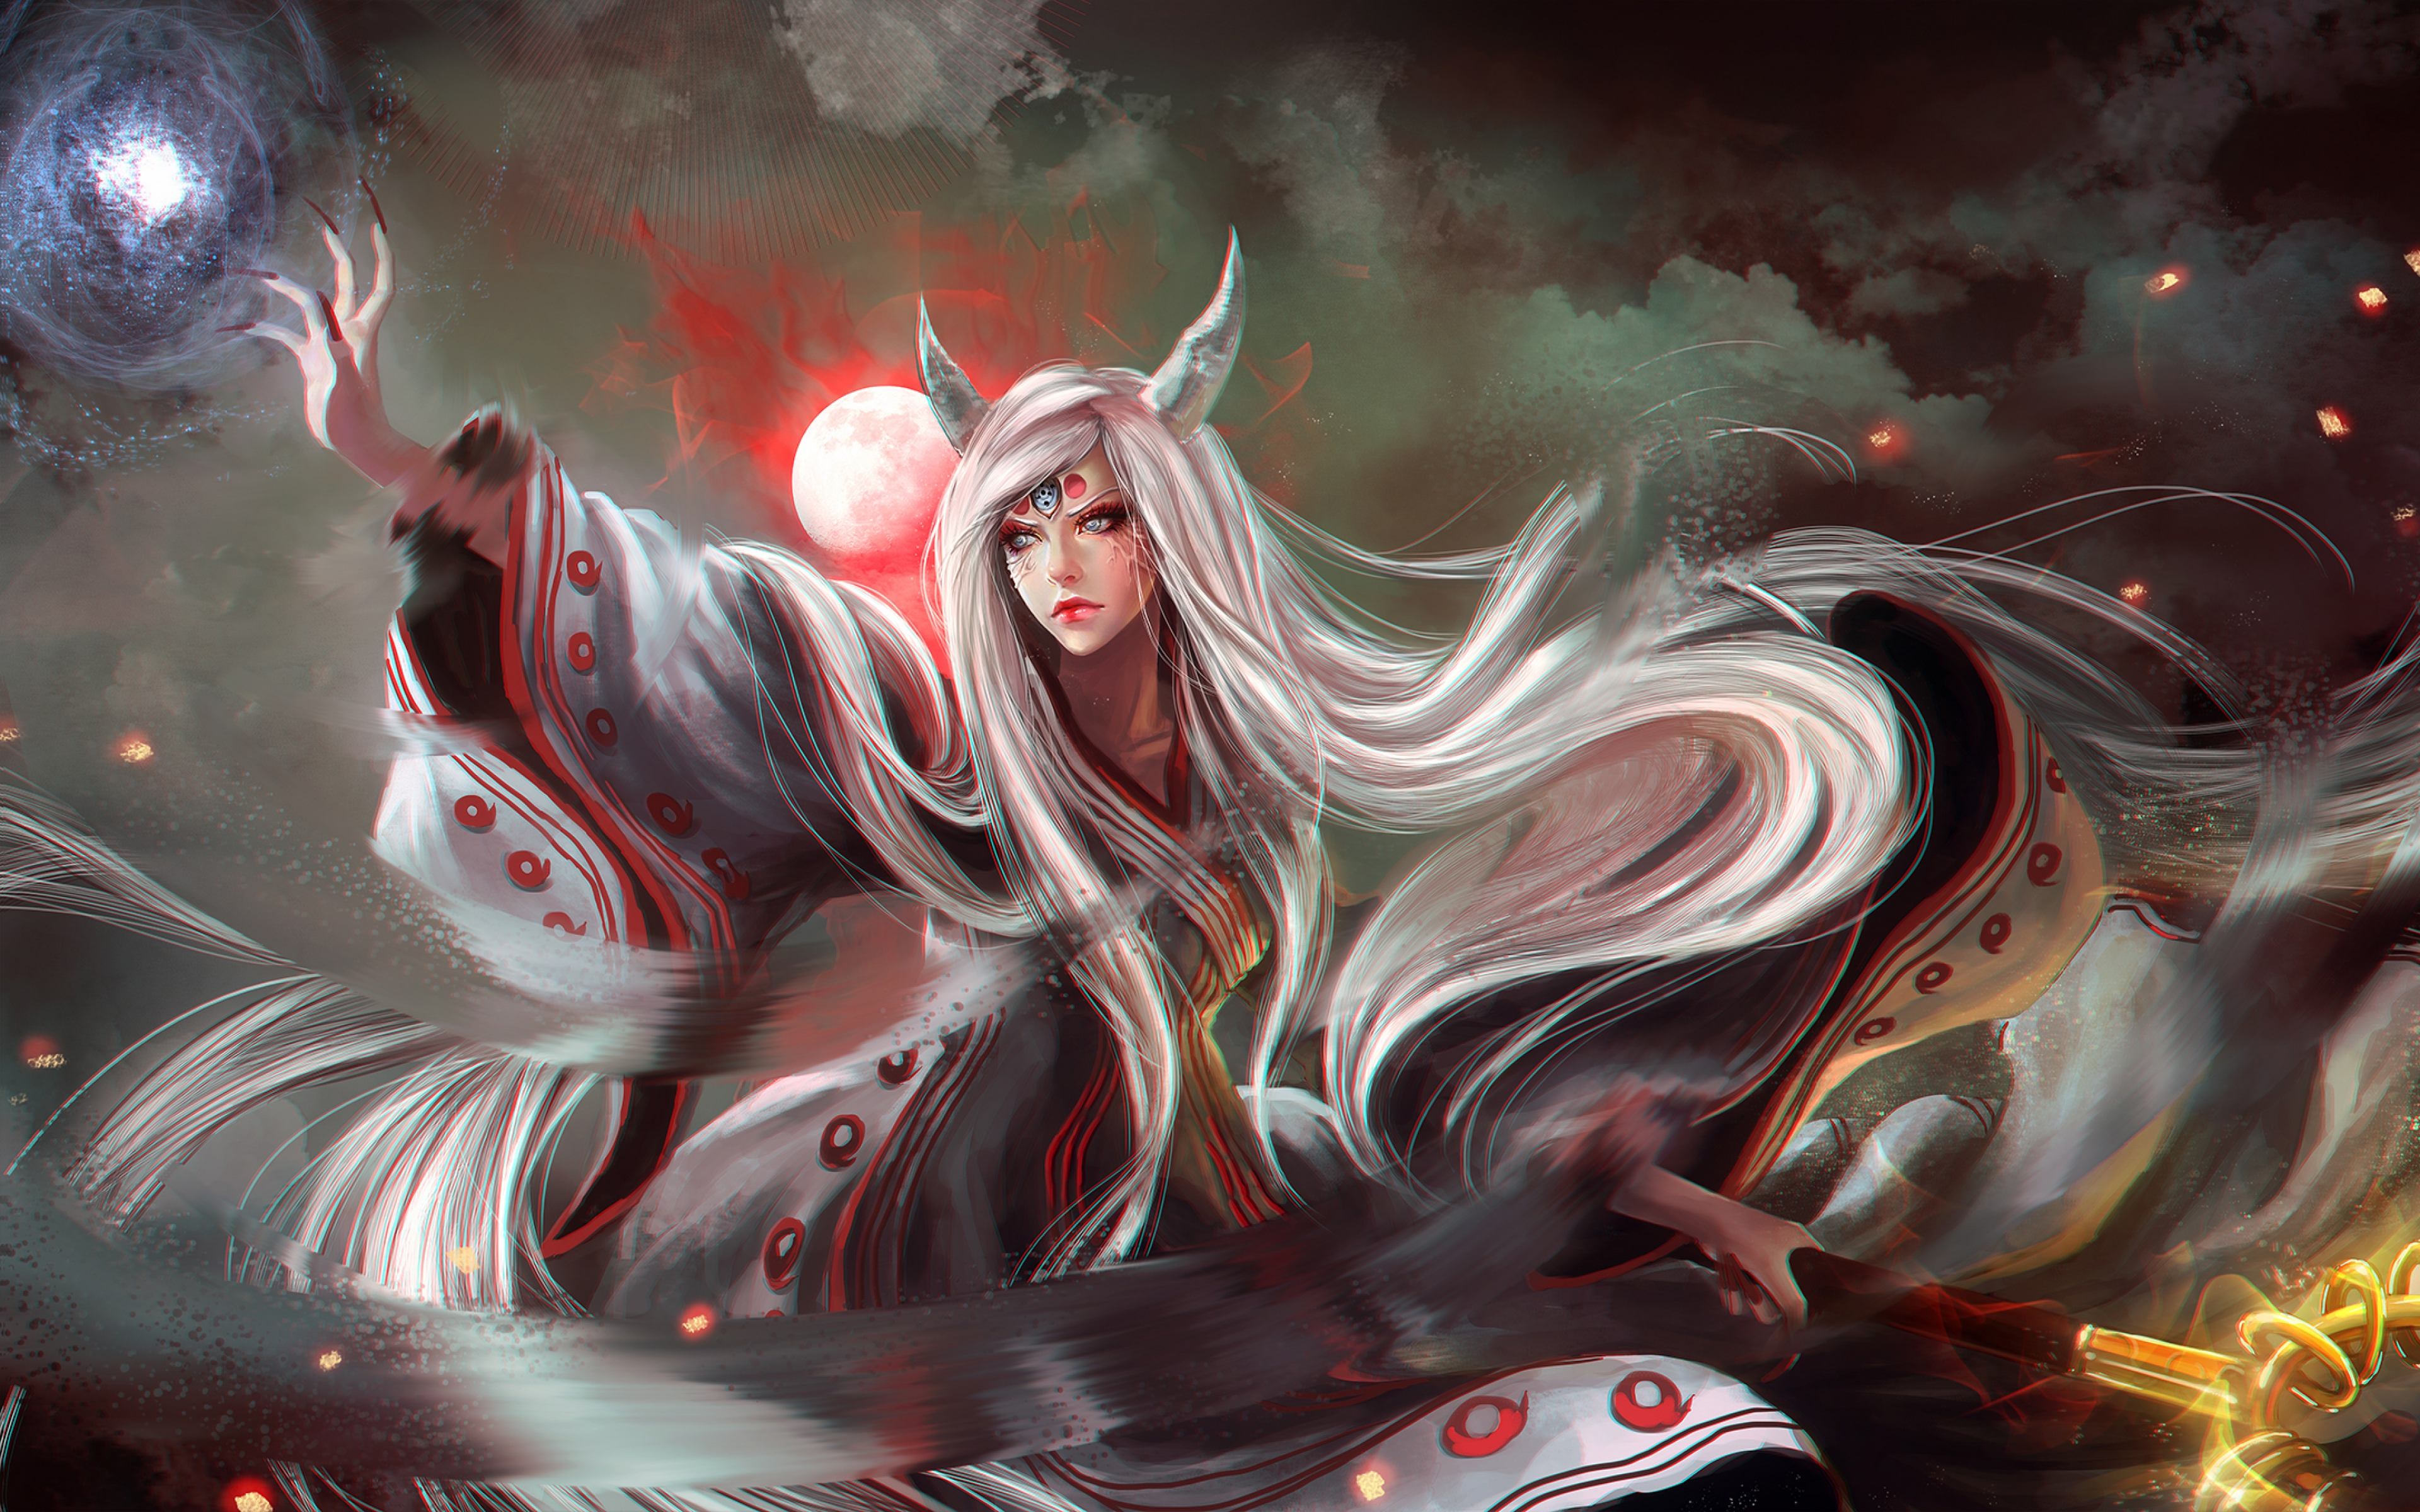 Girl Horns Kaguya Tsutsuki Long Hair Moon Naruto White Hair Woman 3840x2400